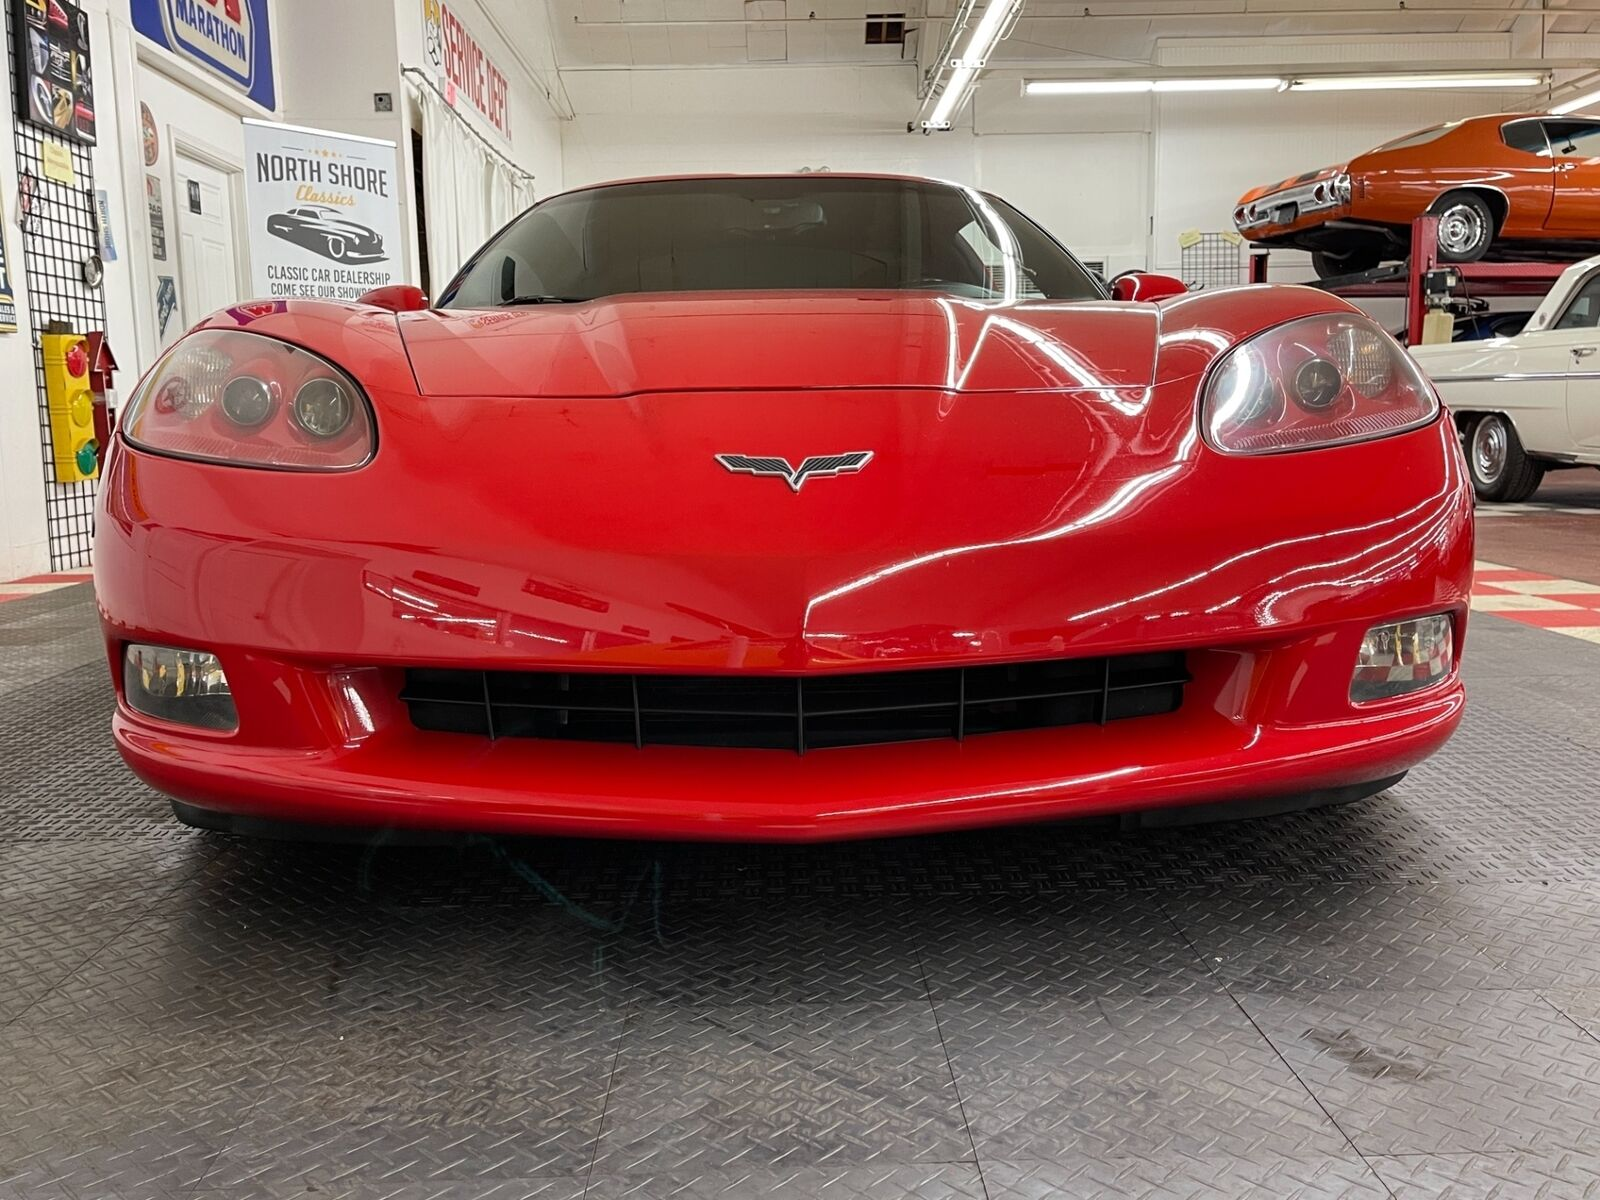 2007 Red Chevrolet Corvette   | C6 Corvette Photo 10